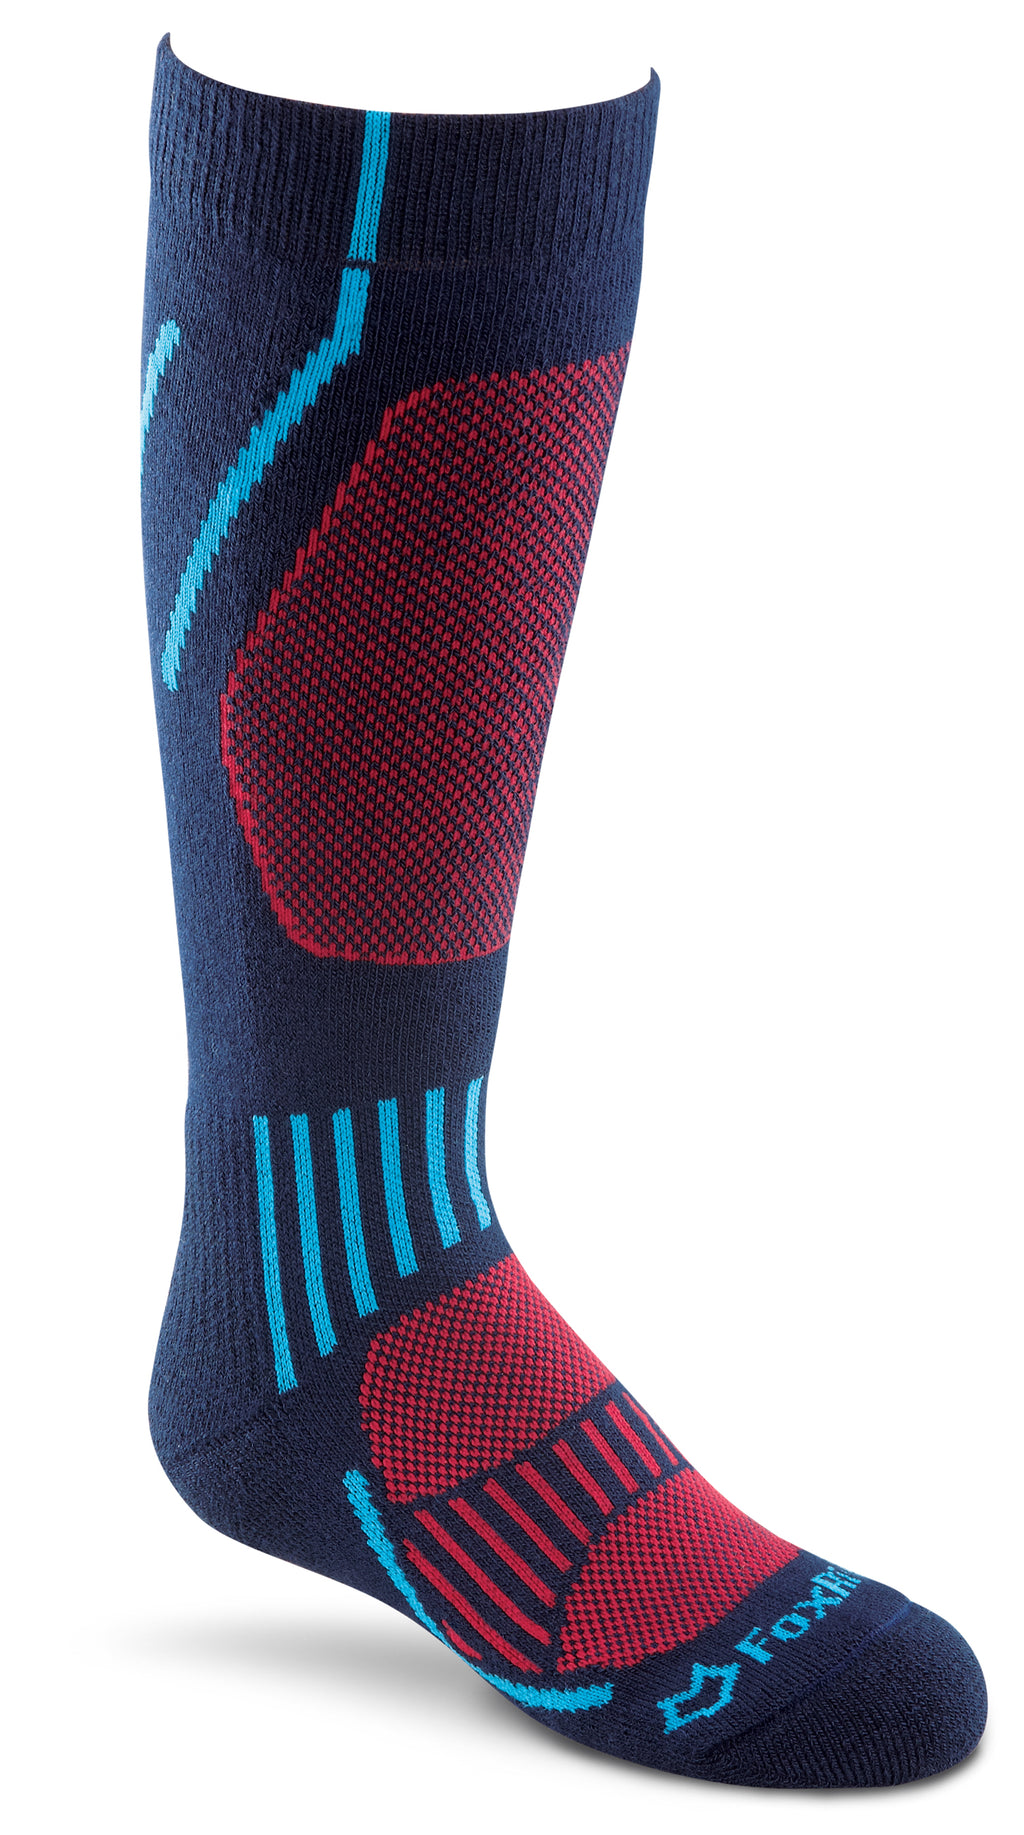 Fox River Boreal MW Kids Cold Weather Medium weight Over-the-calf Socks